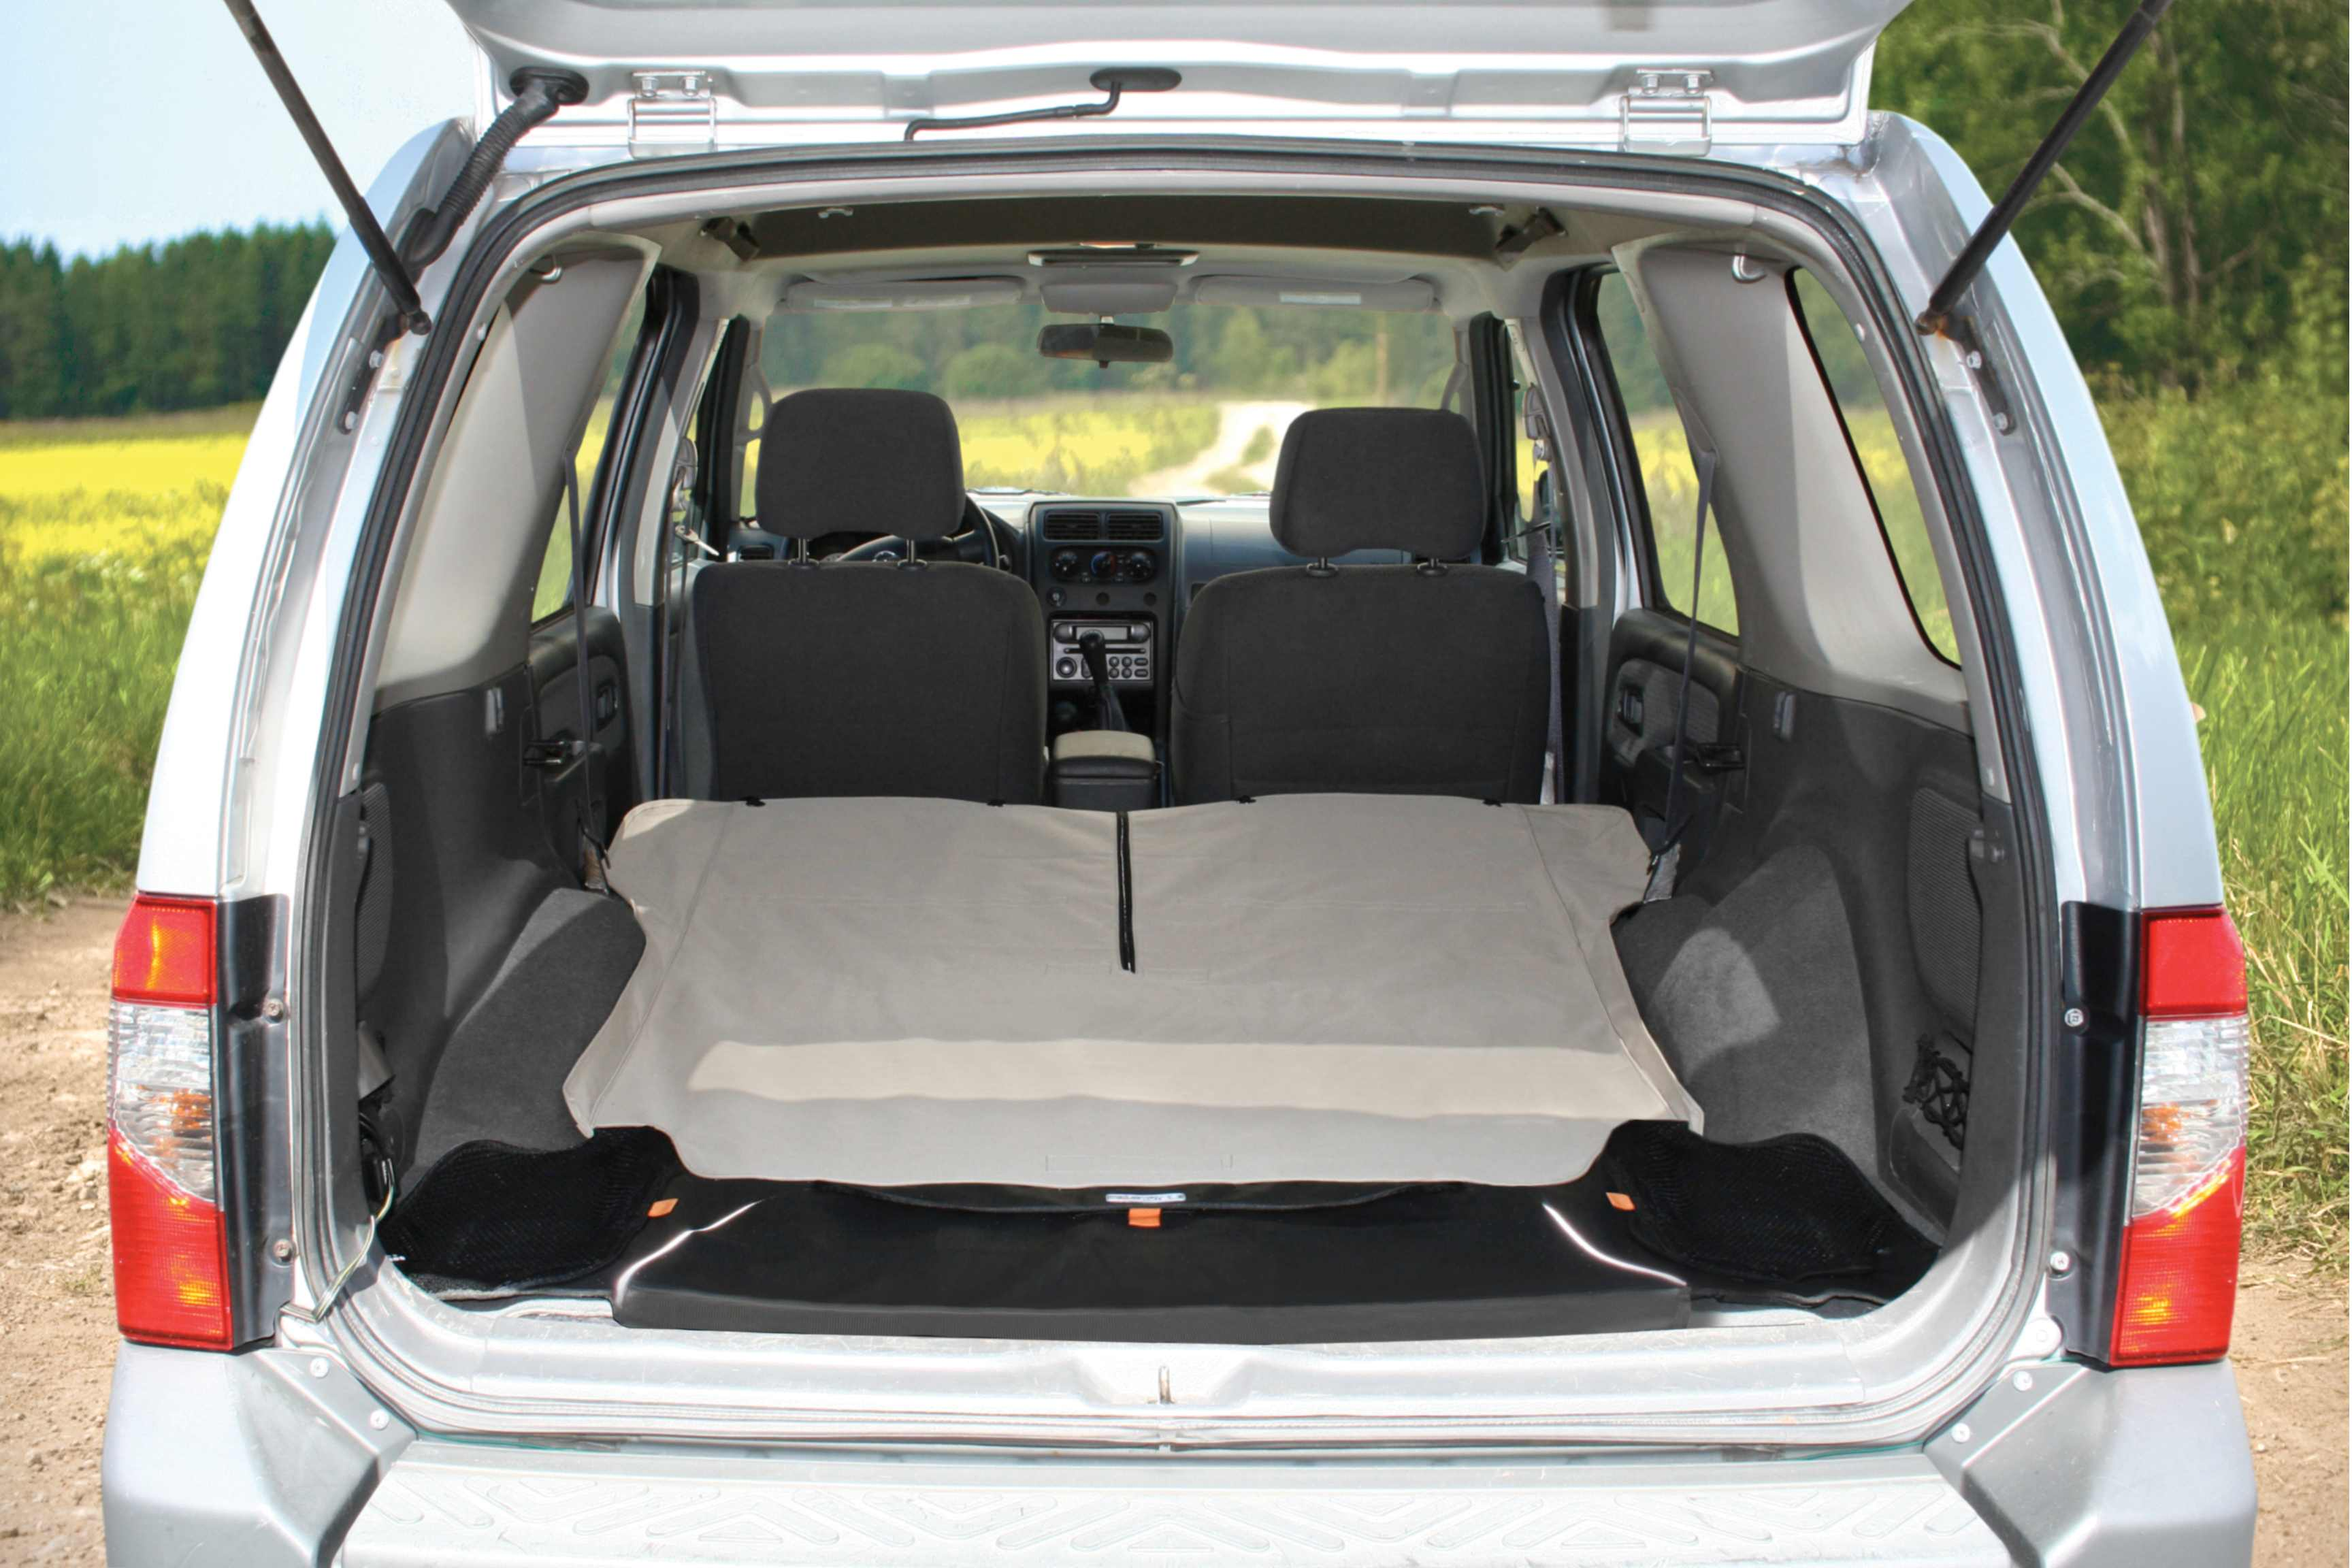 Cargo Liner - Fold down seats to protect entire cargo area with Kurgo Cargo Cape